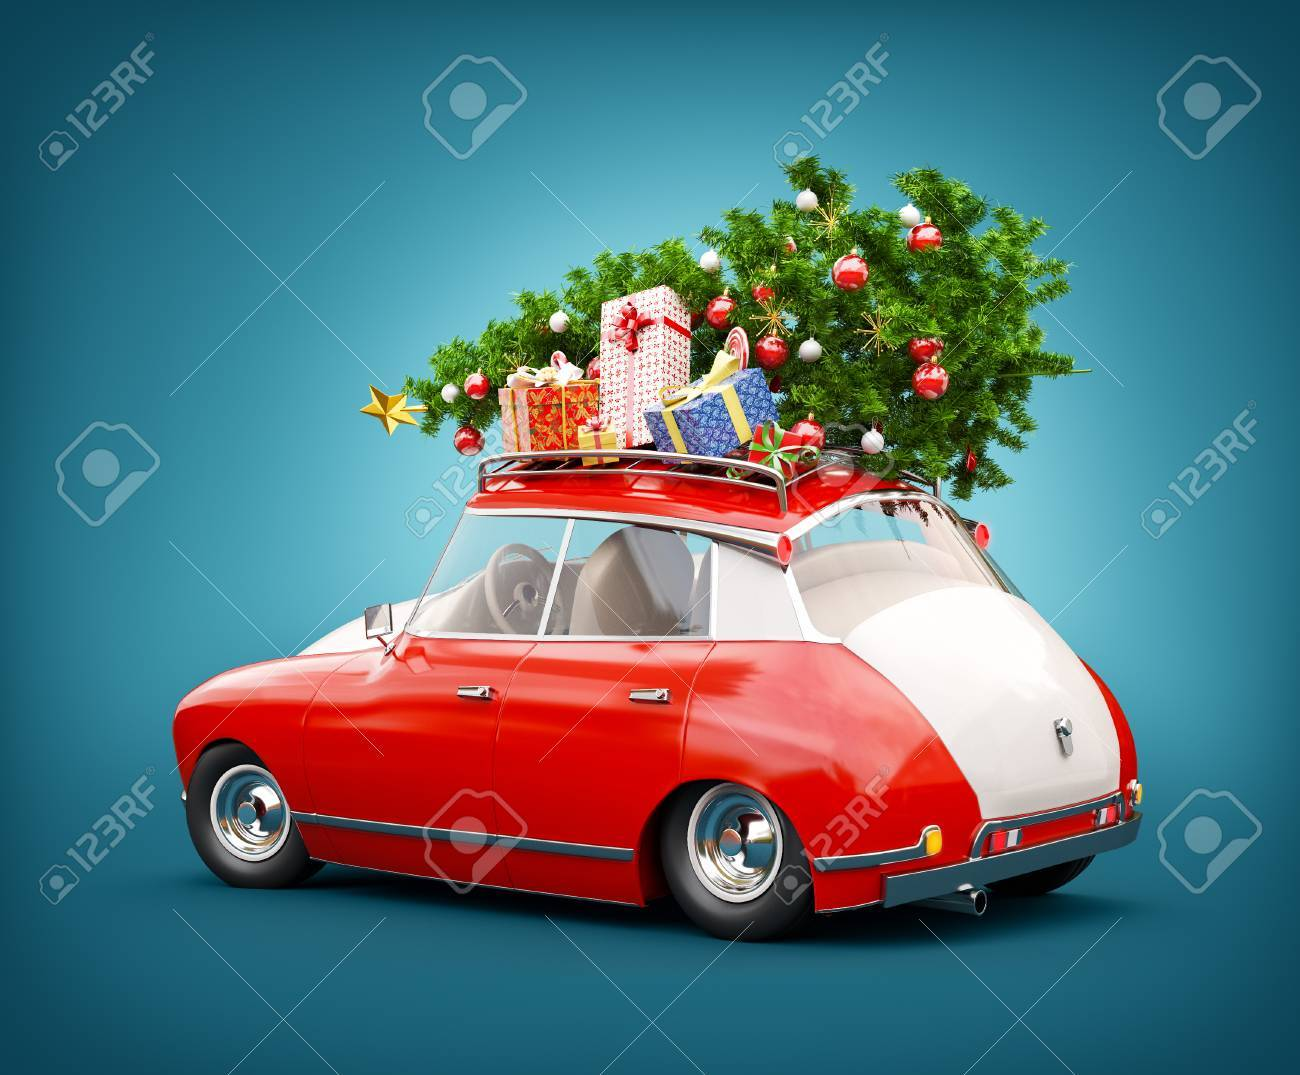 Unusual 3d illustration of a Red Santa's car with gift boxes and christmas tree on the top. Merry Christmas and a Happy New Year concept. - 87678189